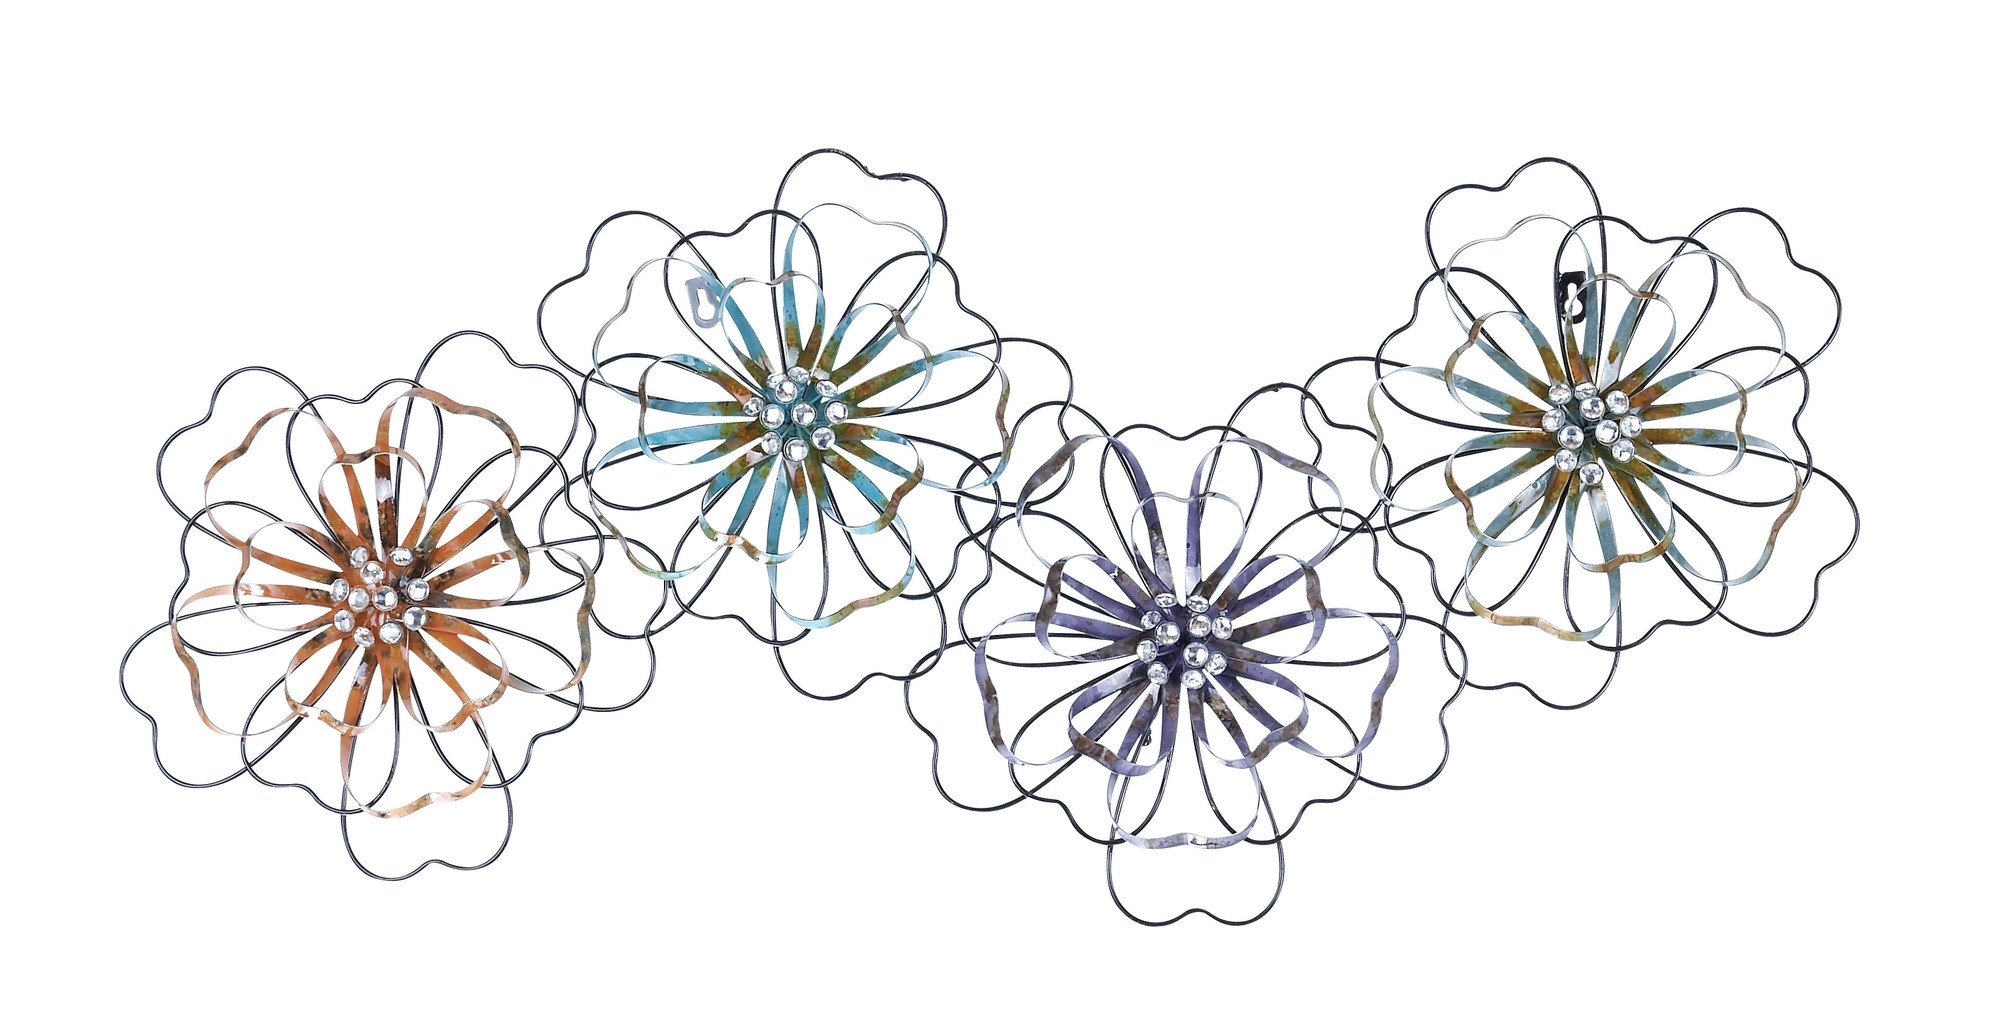 Intermingled Flowers – Floral Metal Wall Art Within Current Metal Flowers Wall Art (View 8 of 20)